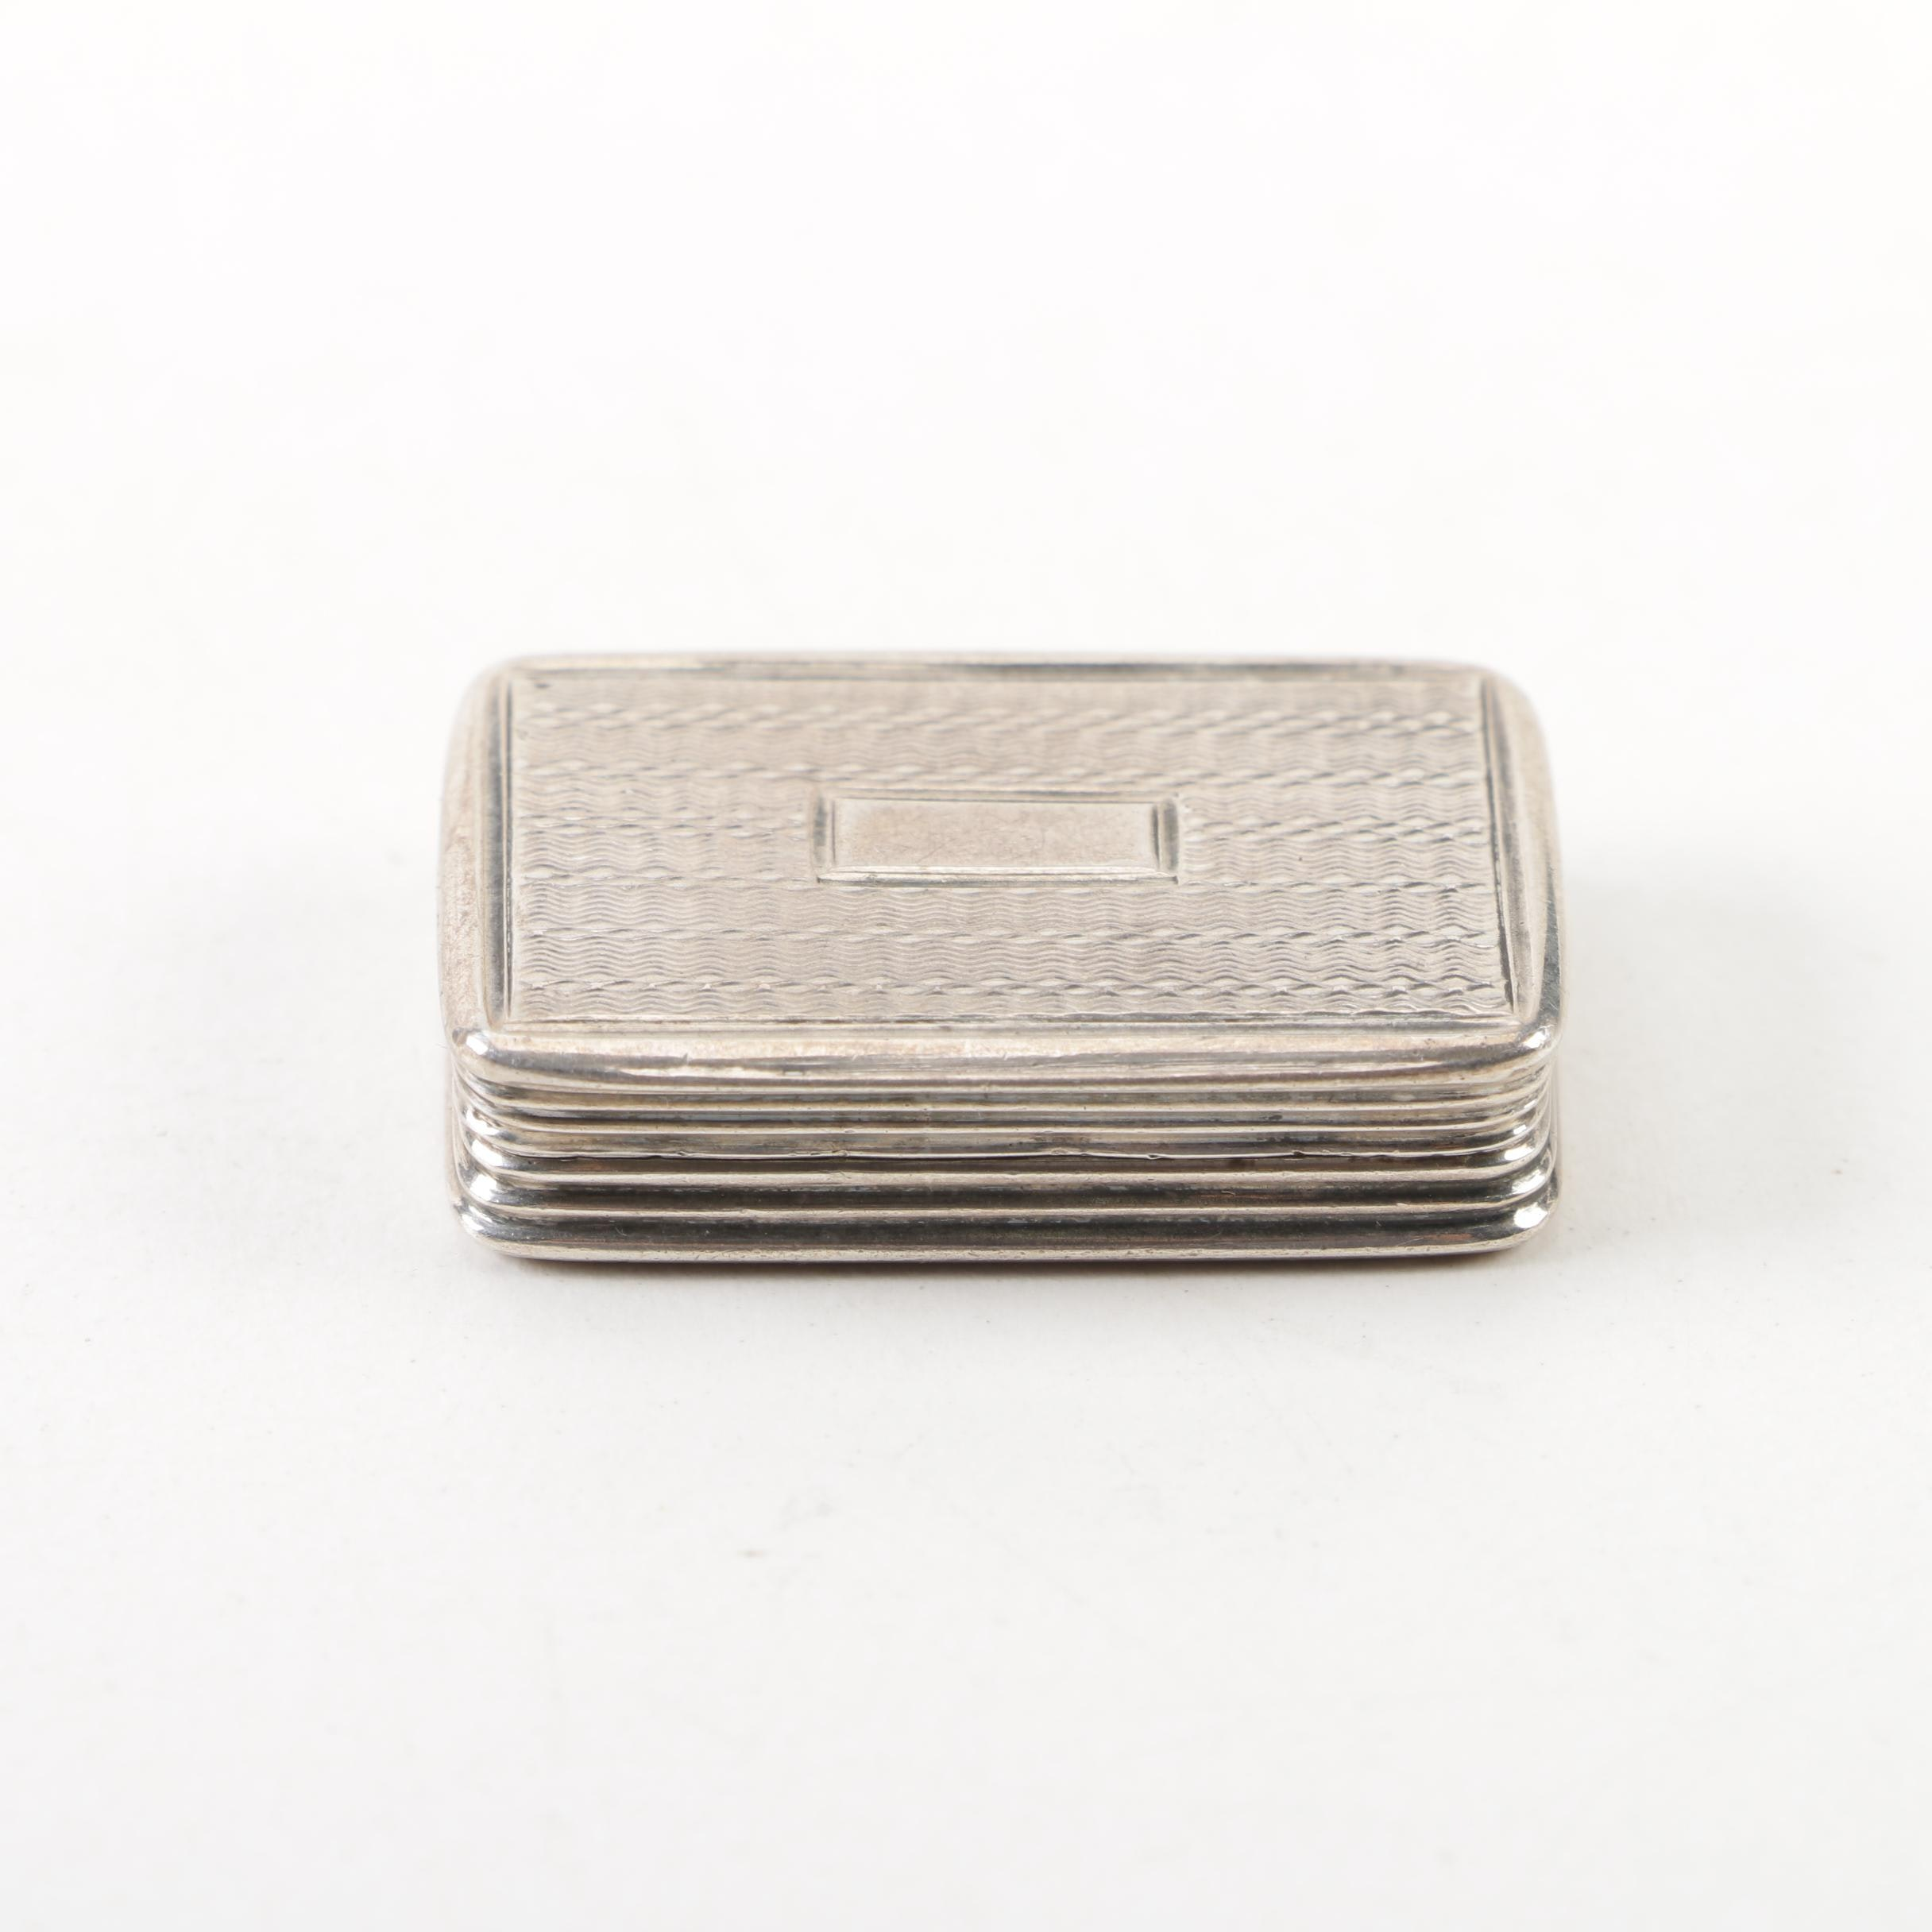 William IV Sterling Silver Vinaigrette with Mark of Joseph Willmore